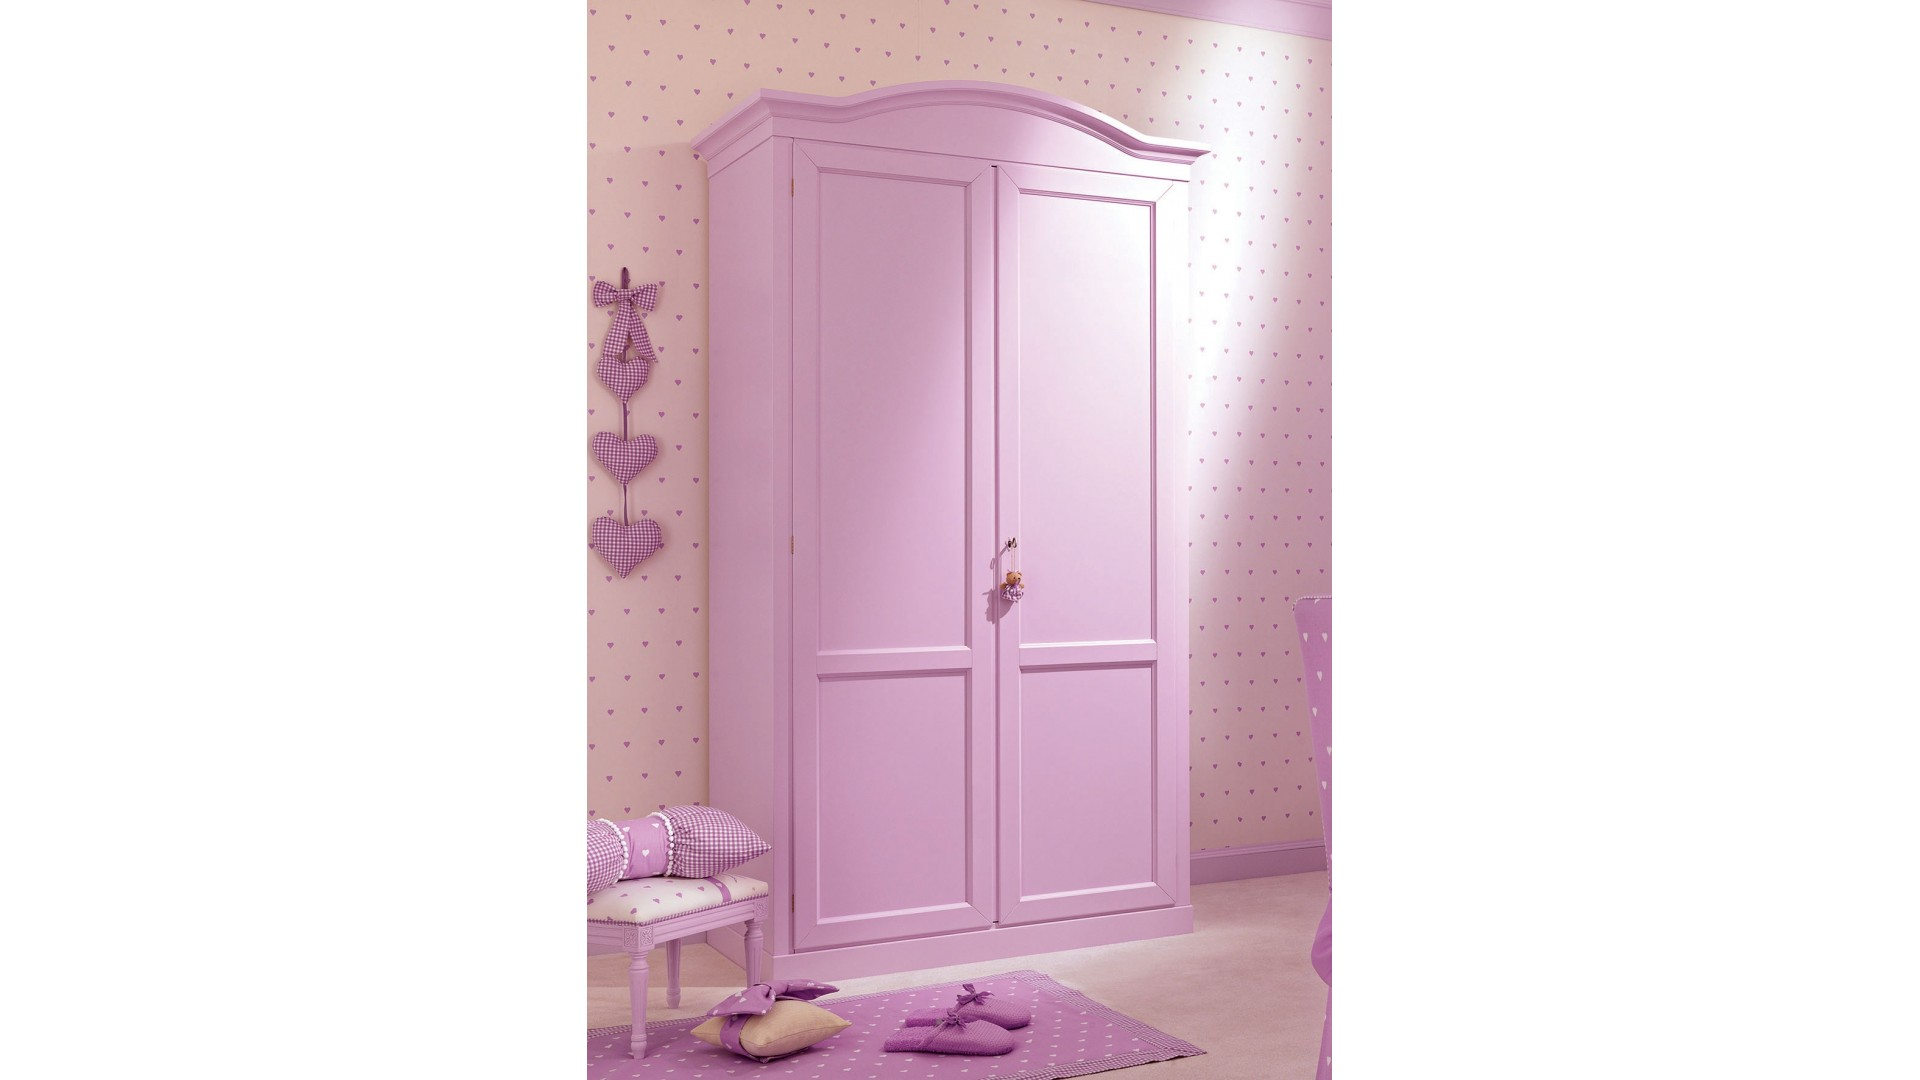 armoire penderie 2 portes battantes couleur lila piermaria so nuit. Black Bedroom Furniture Sets. Home Design Ideas